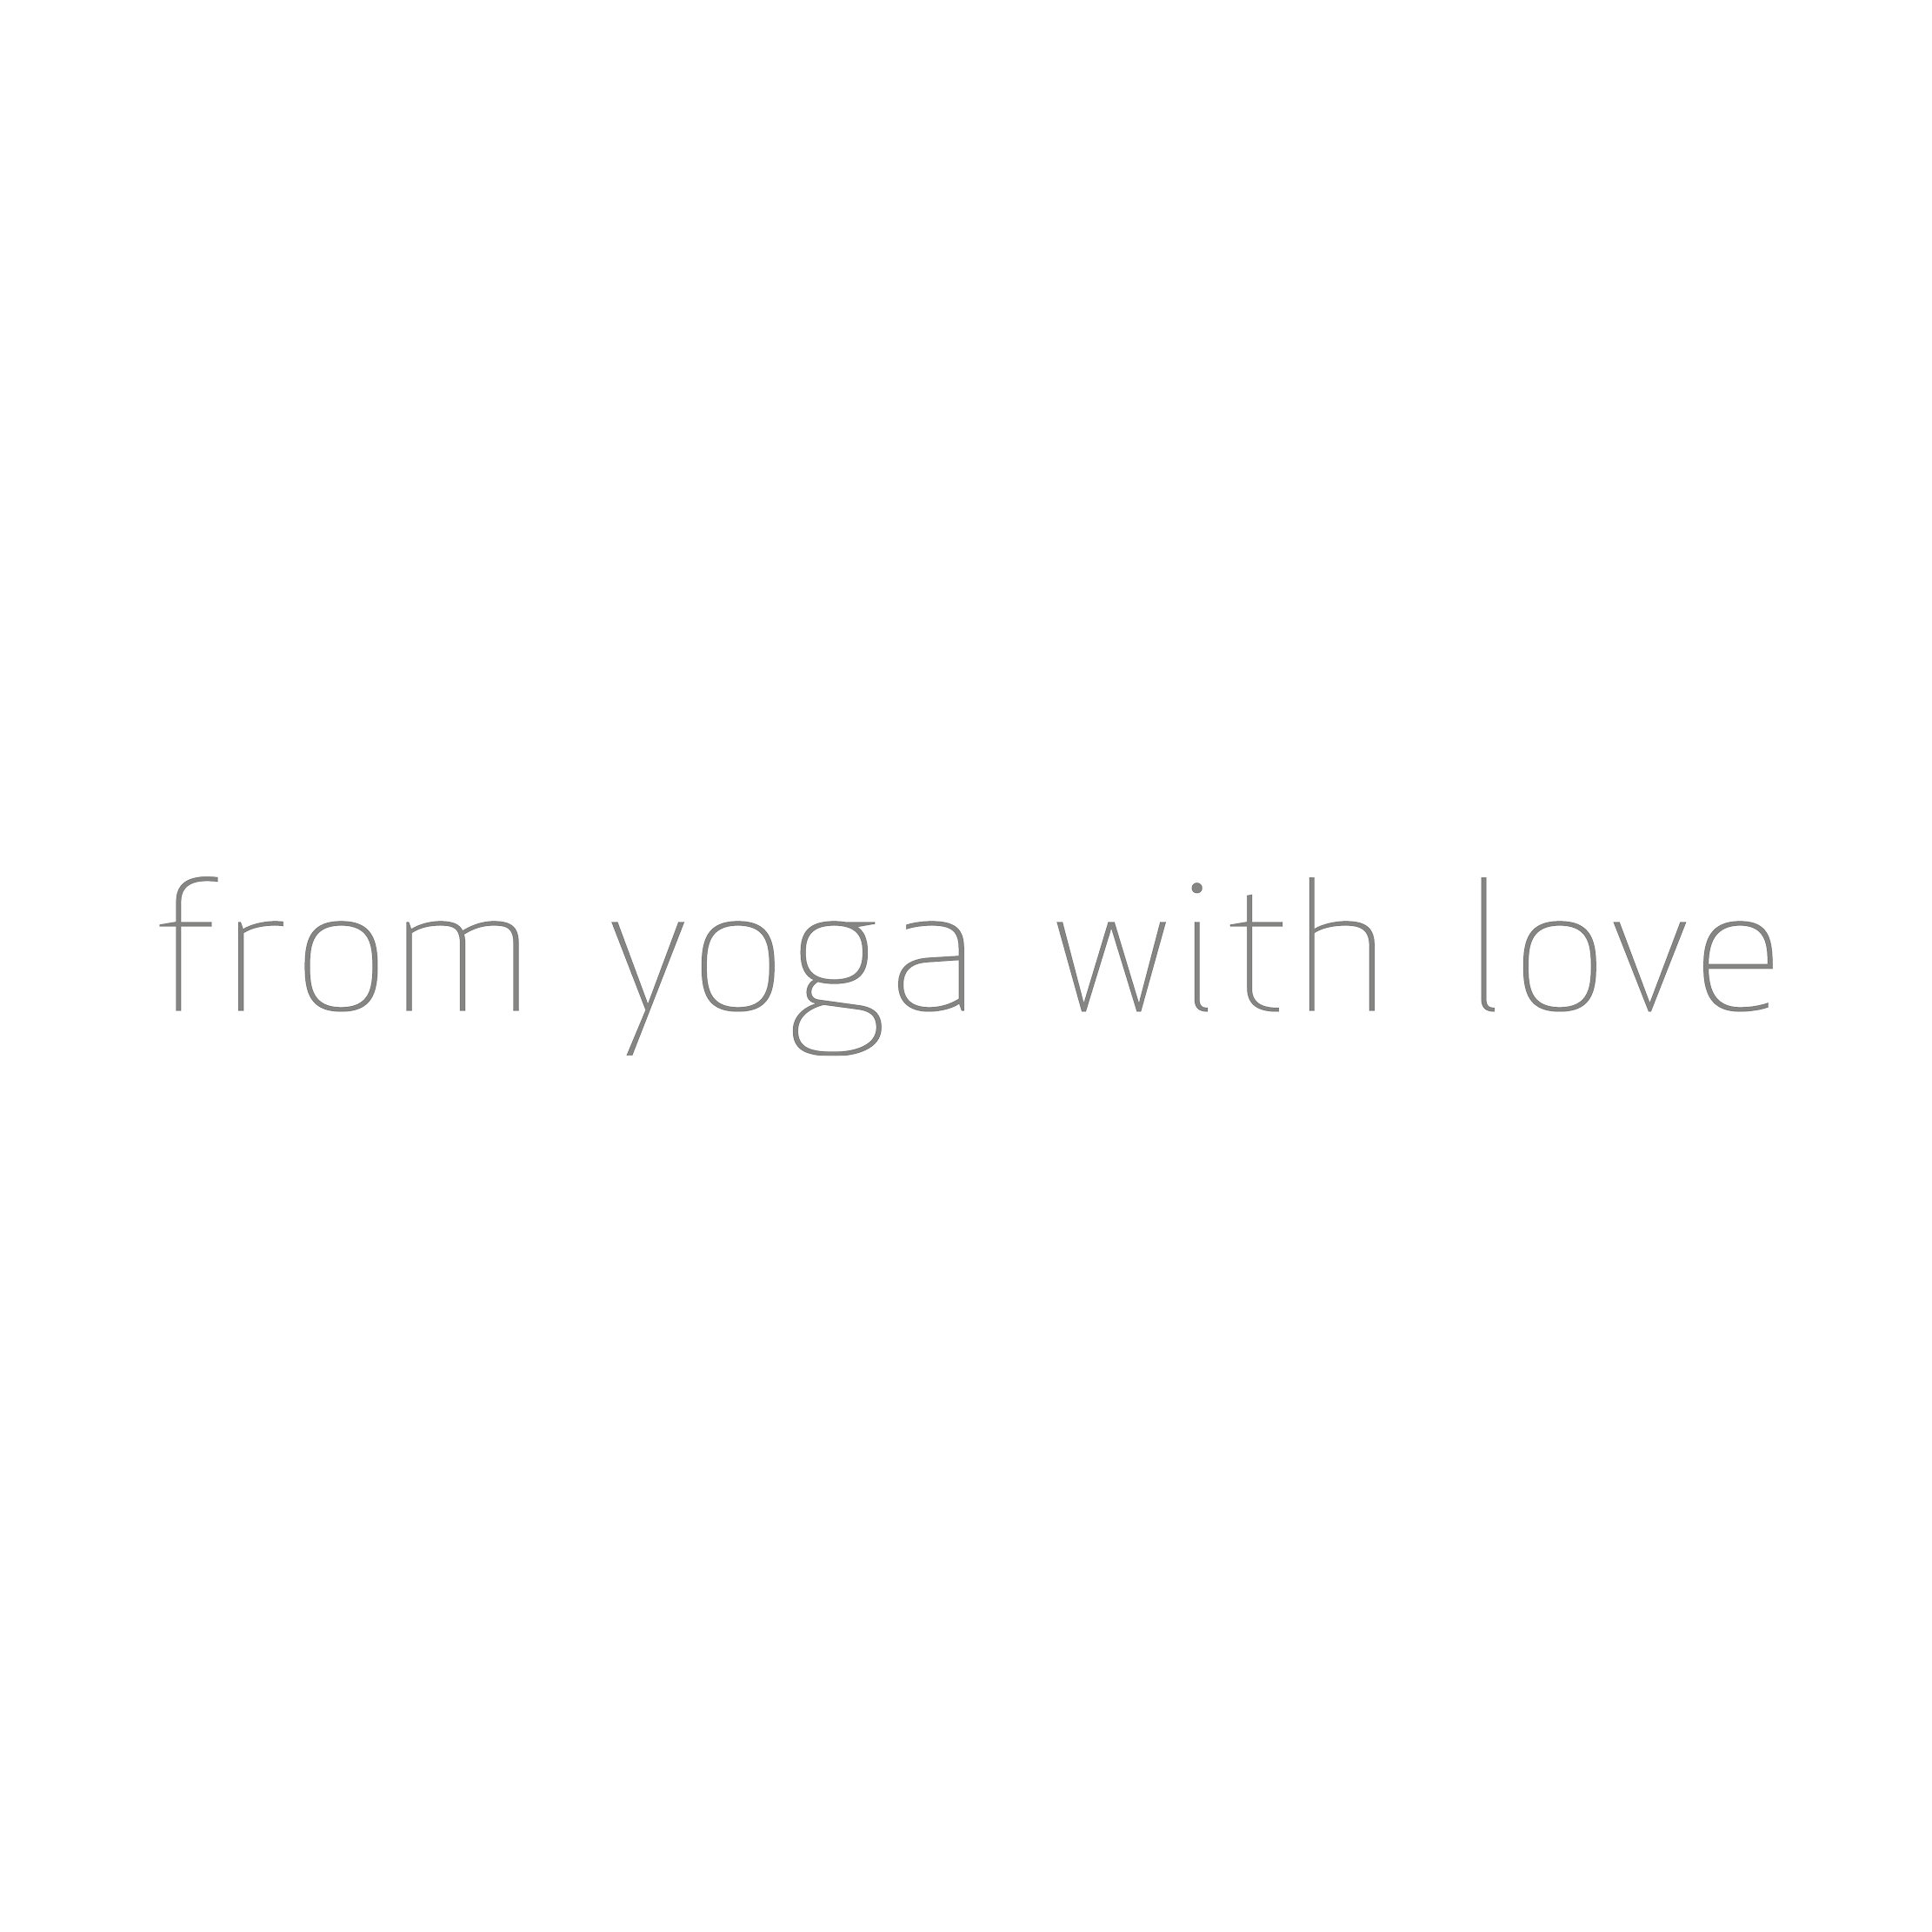 From yoga with love.png